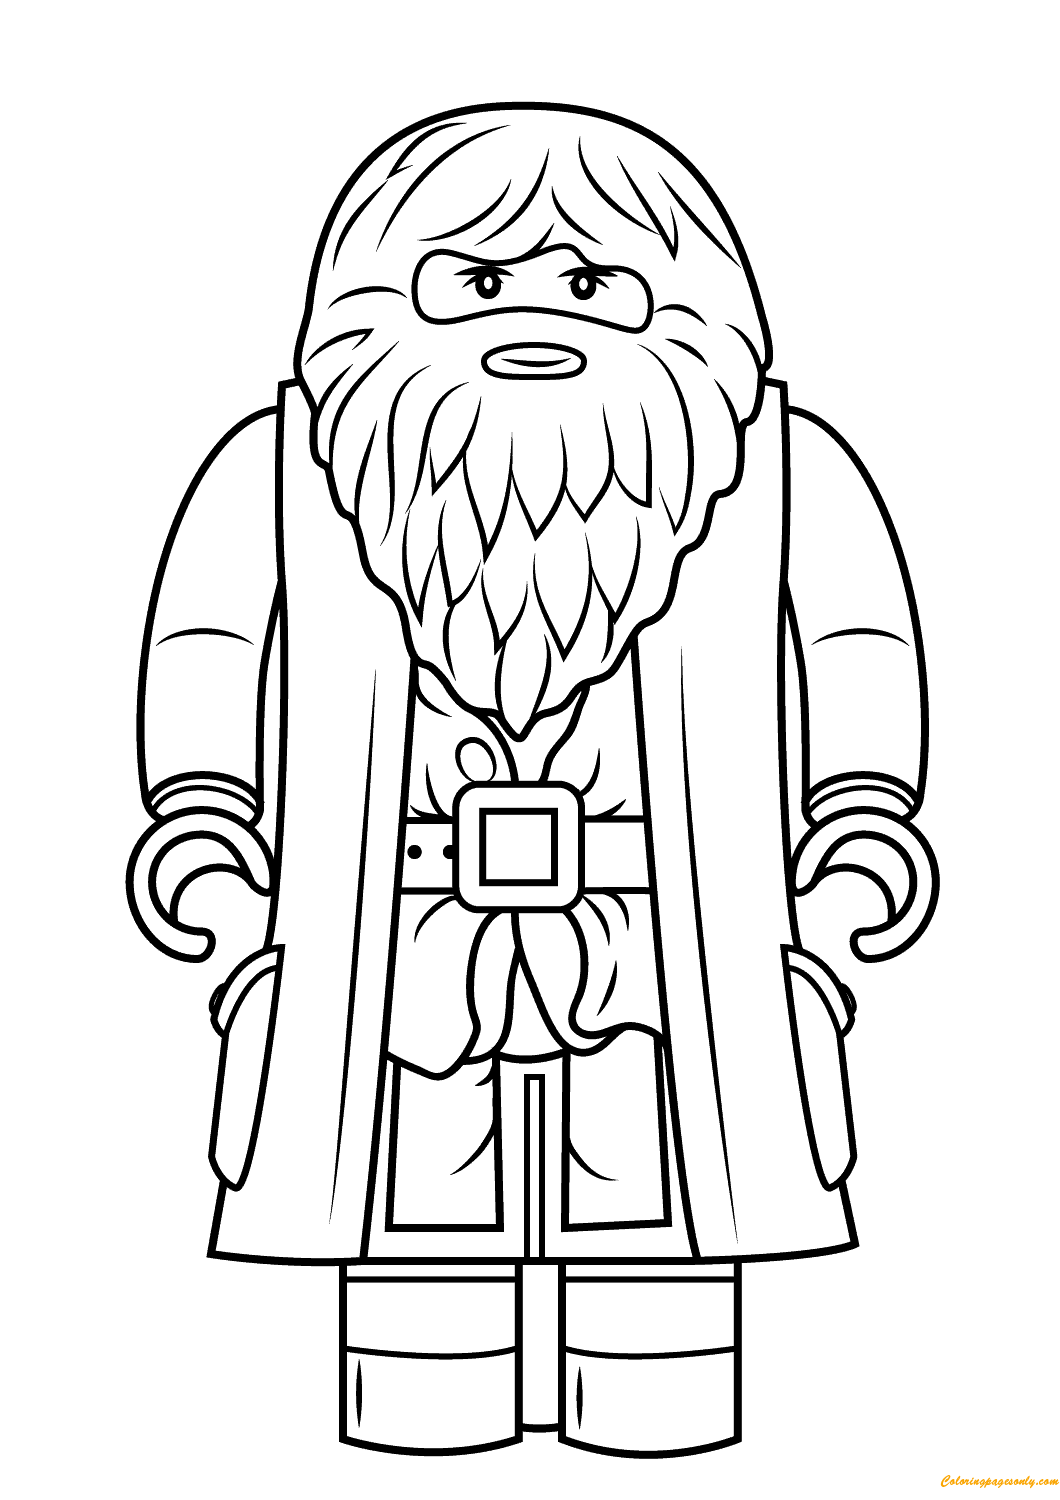 Lego Harry Potter Rubeus Hagrid Minifigure Coloring Page